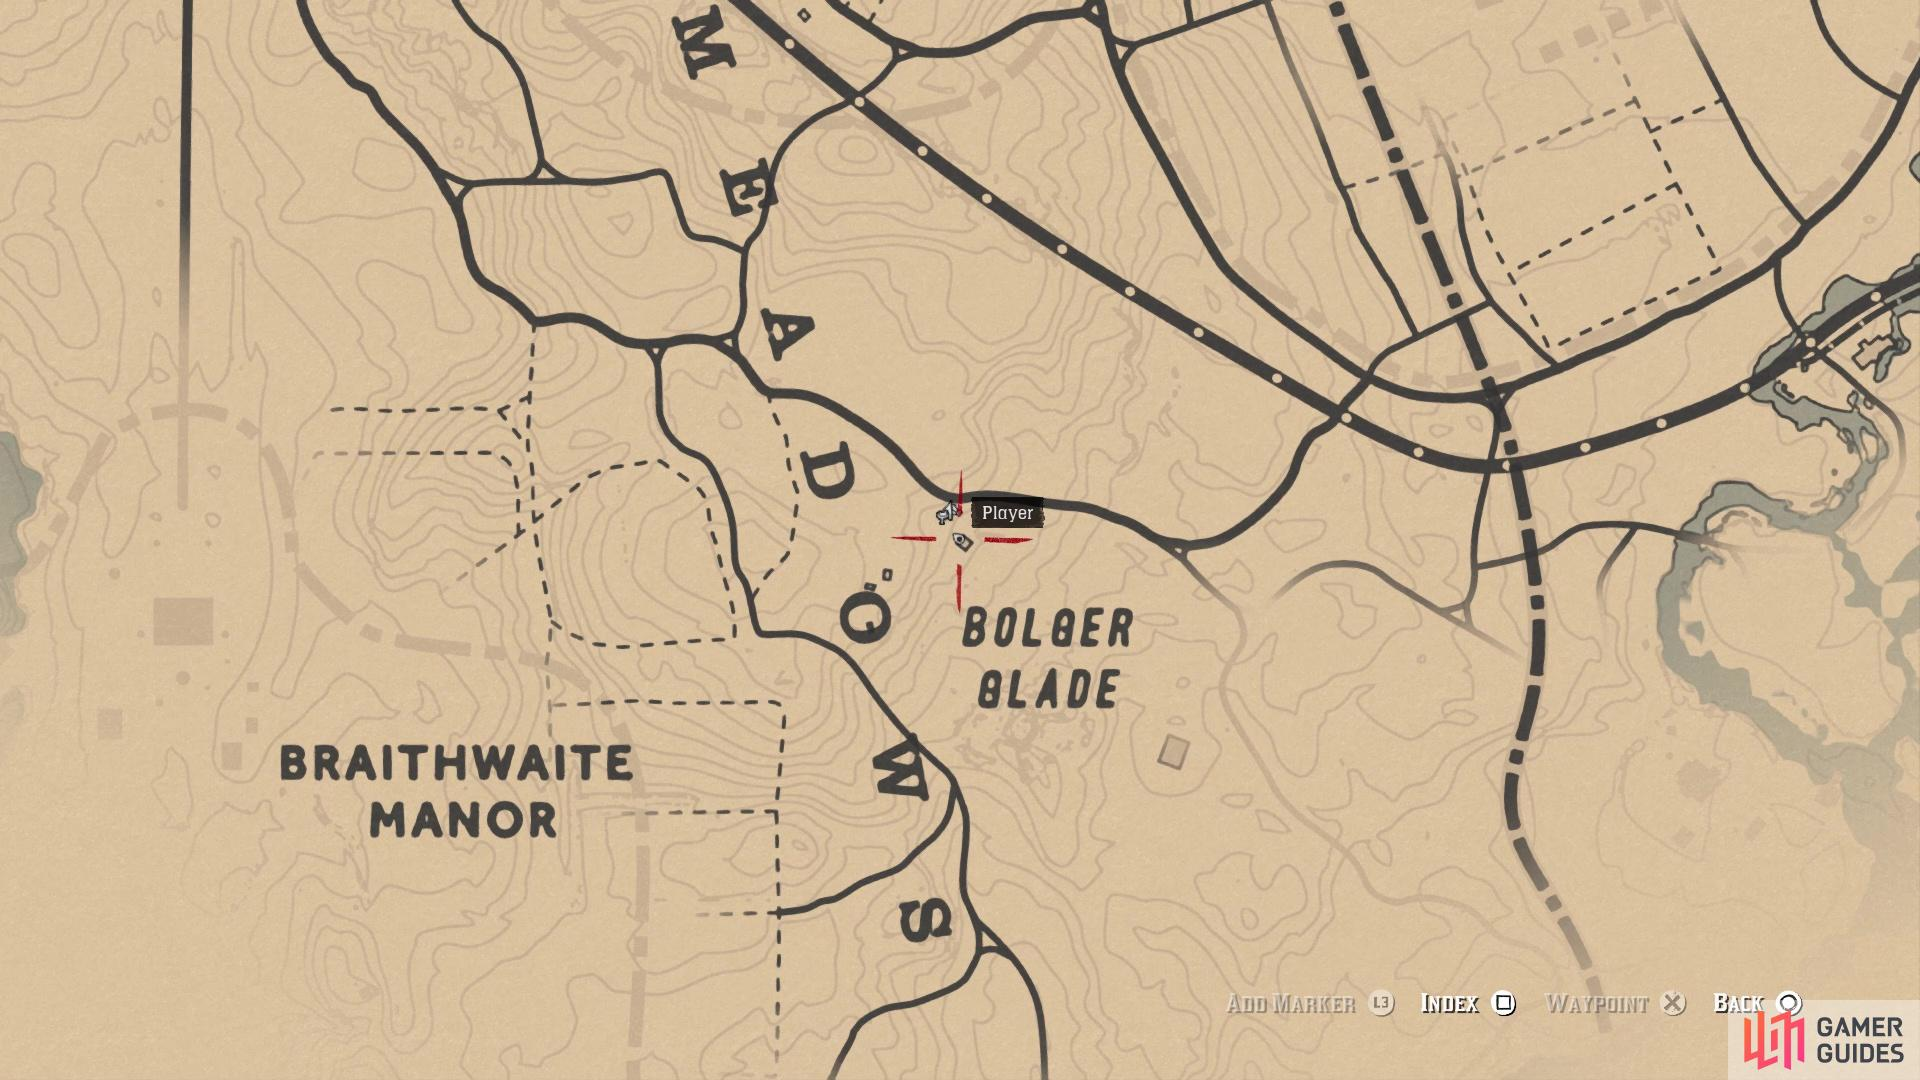 The location of the Bloodhound card on the map